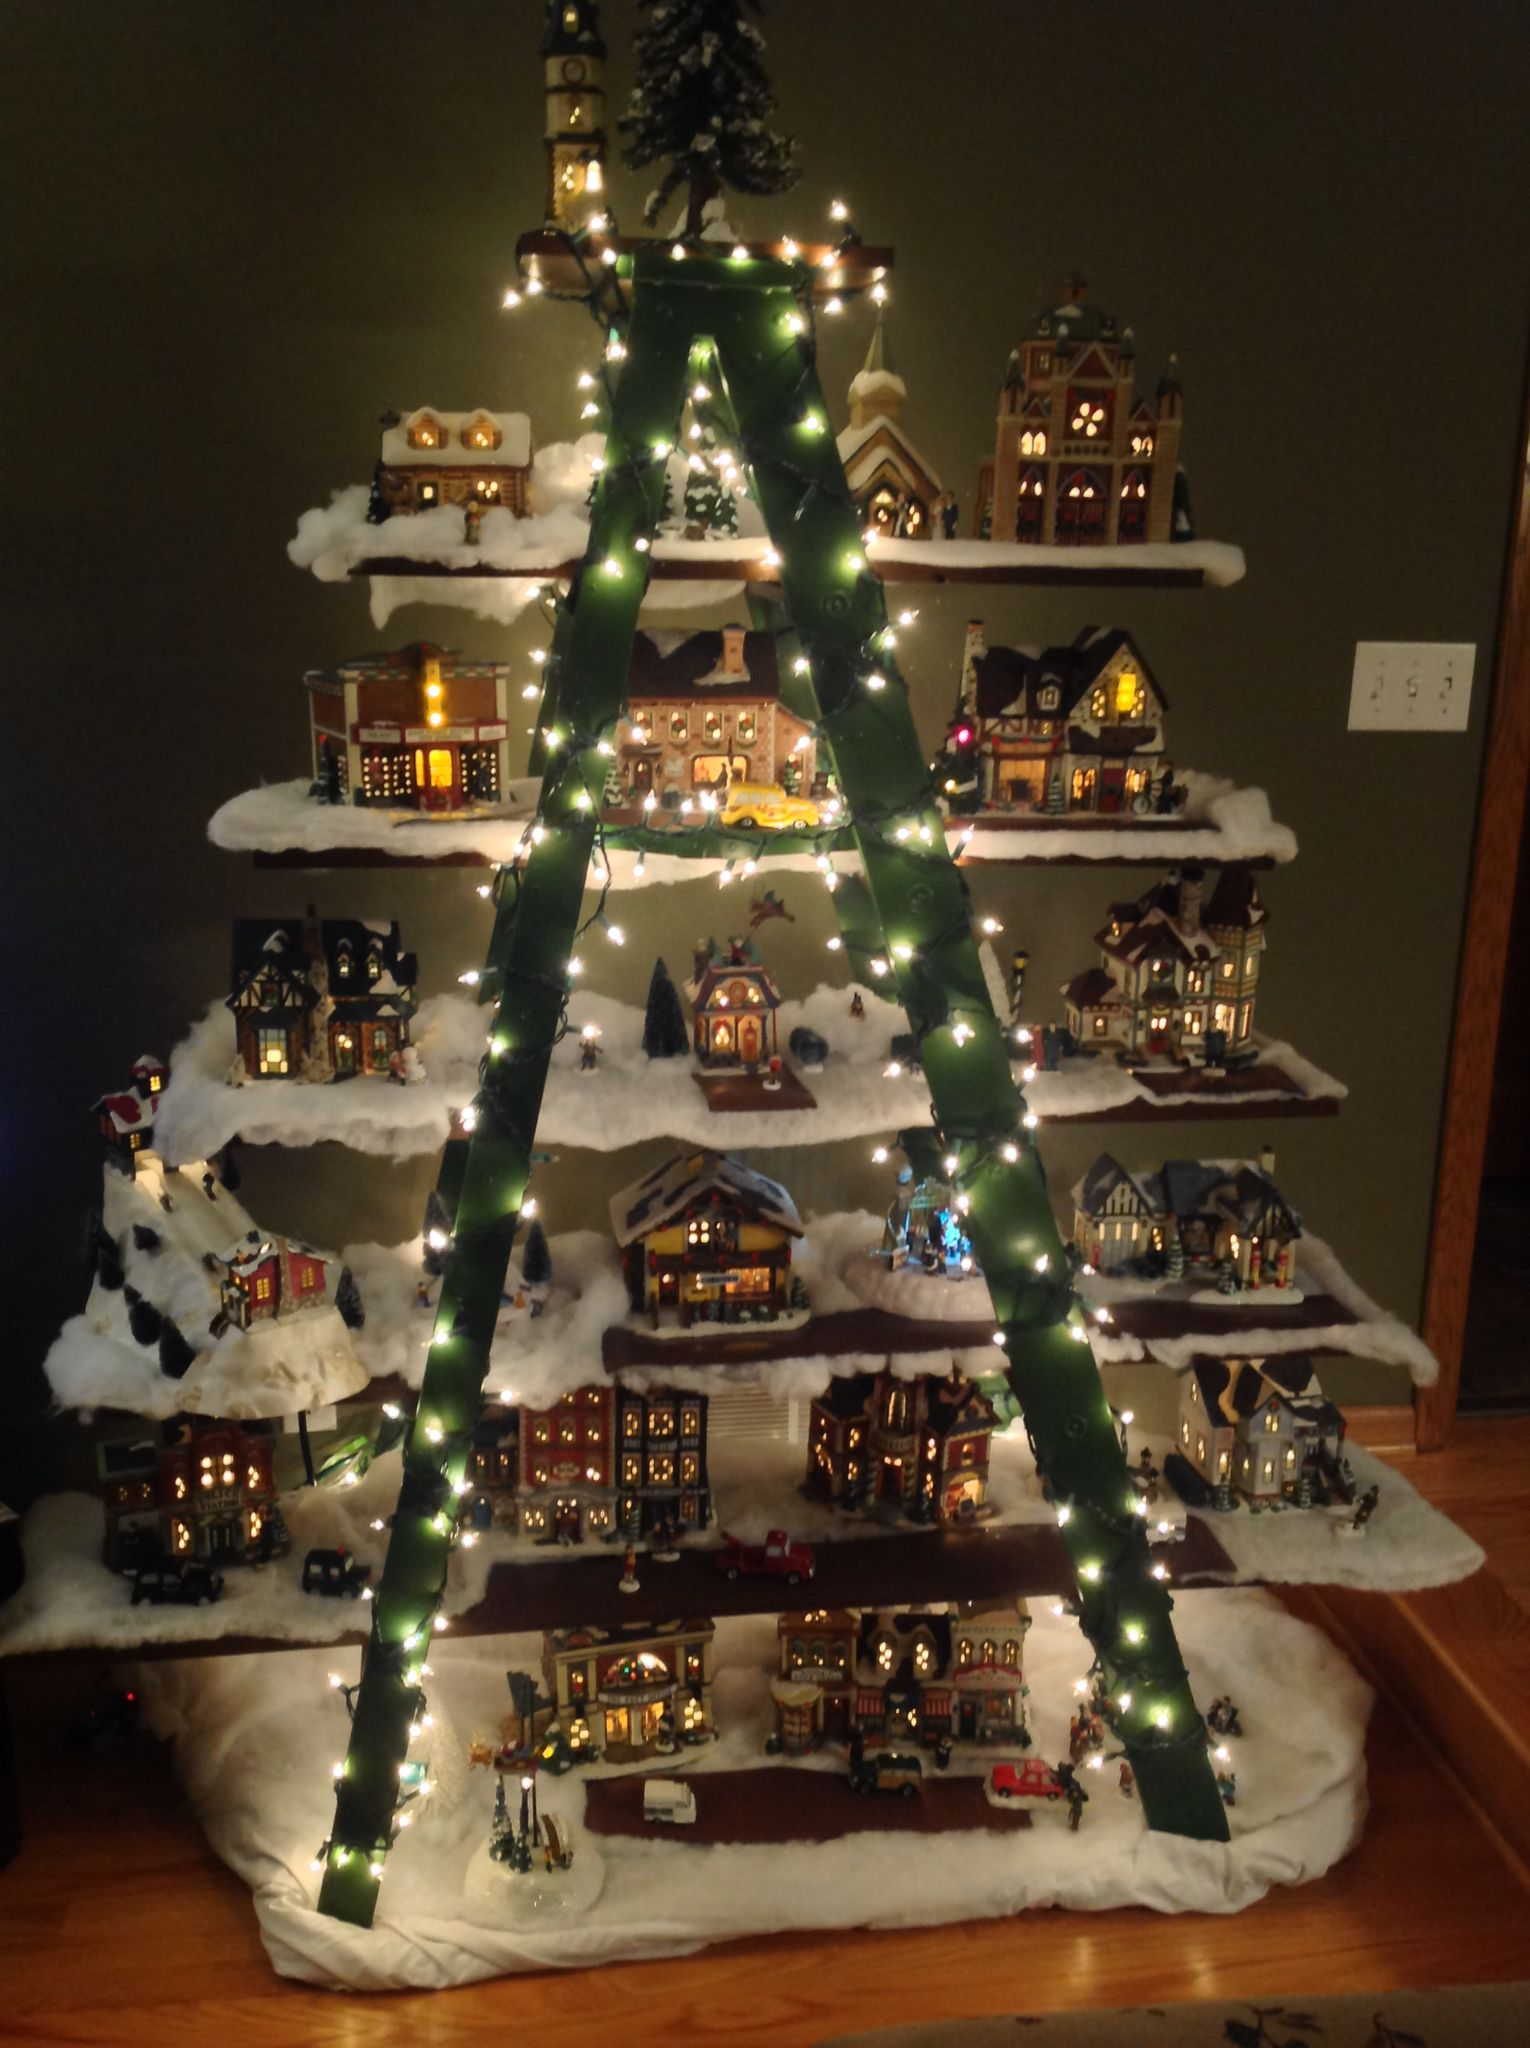 Ladder Christmas Tree.Ladder Christmas Tree For Holiday Houses Diy Crafts